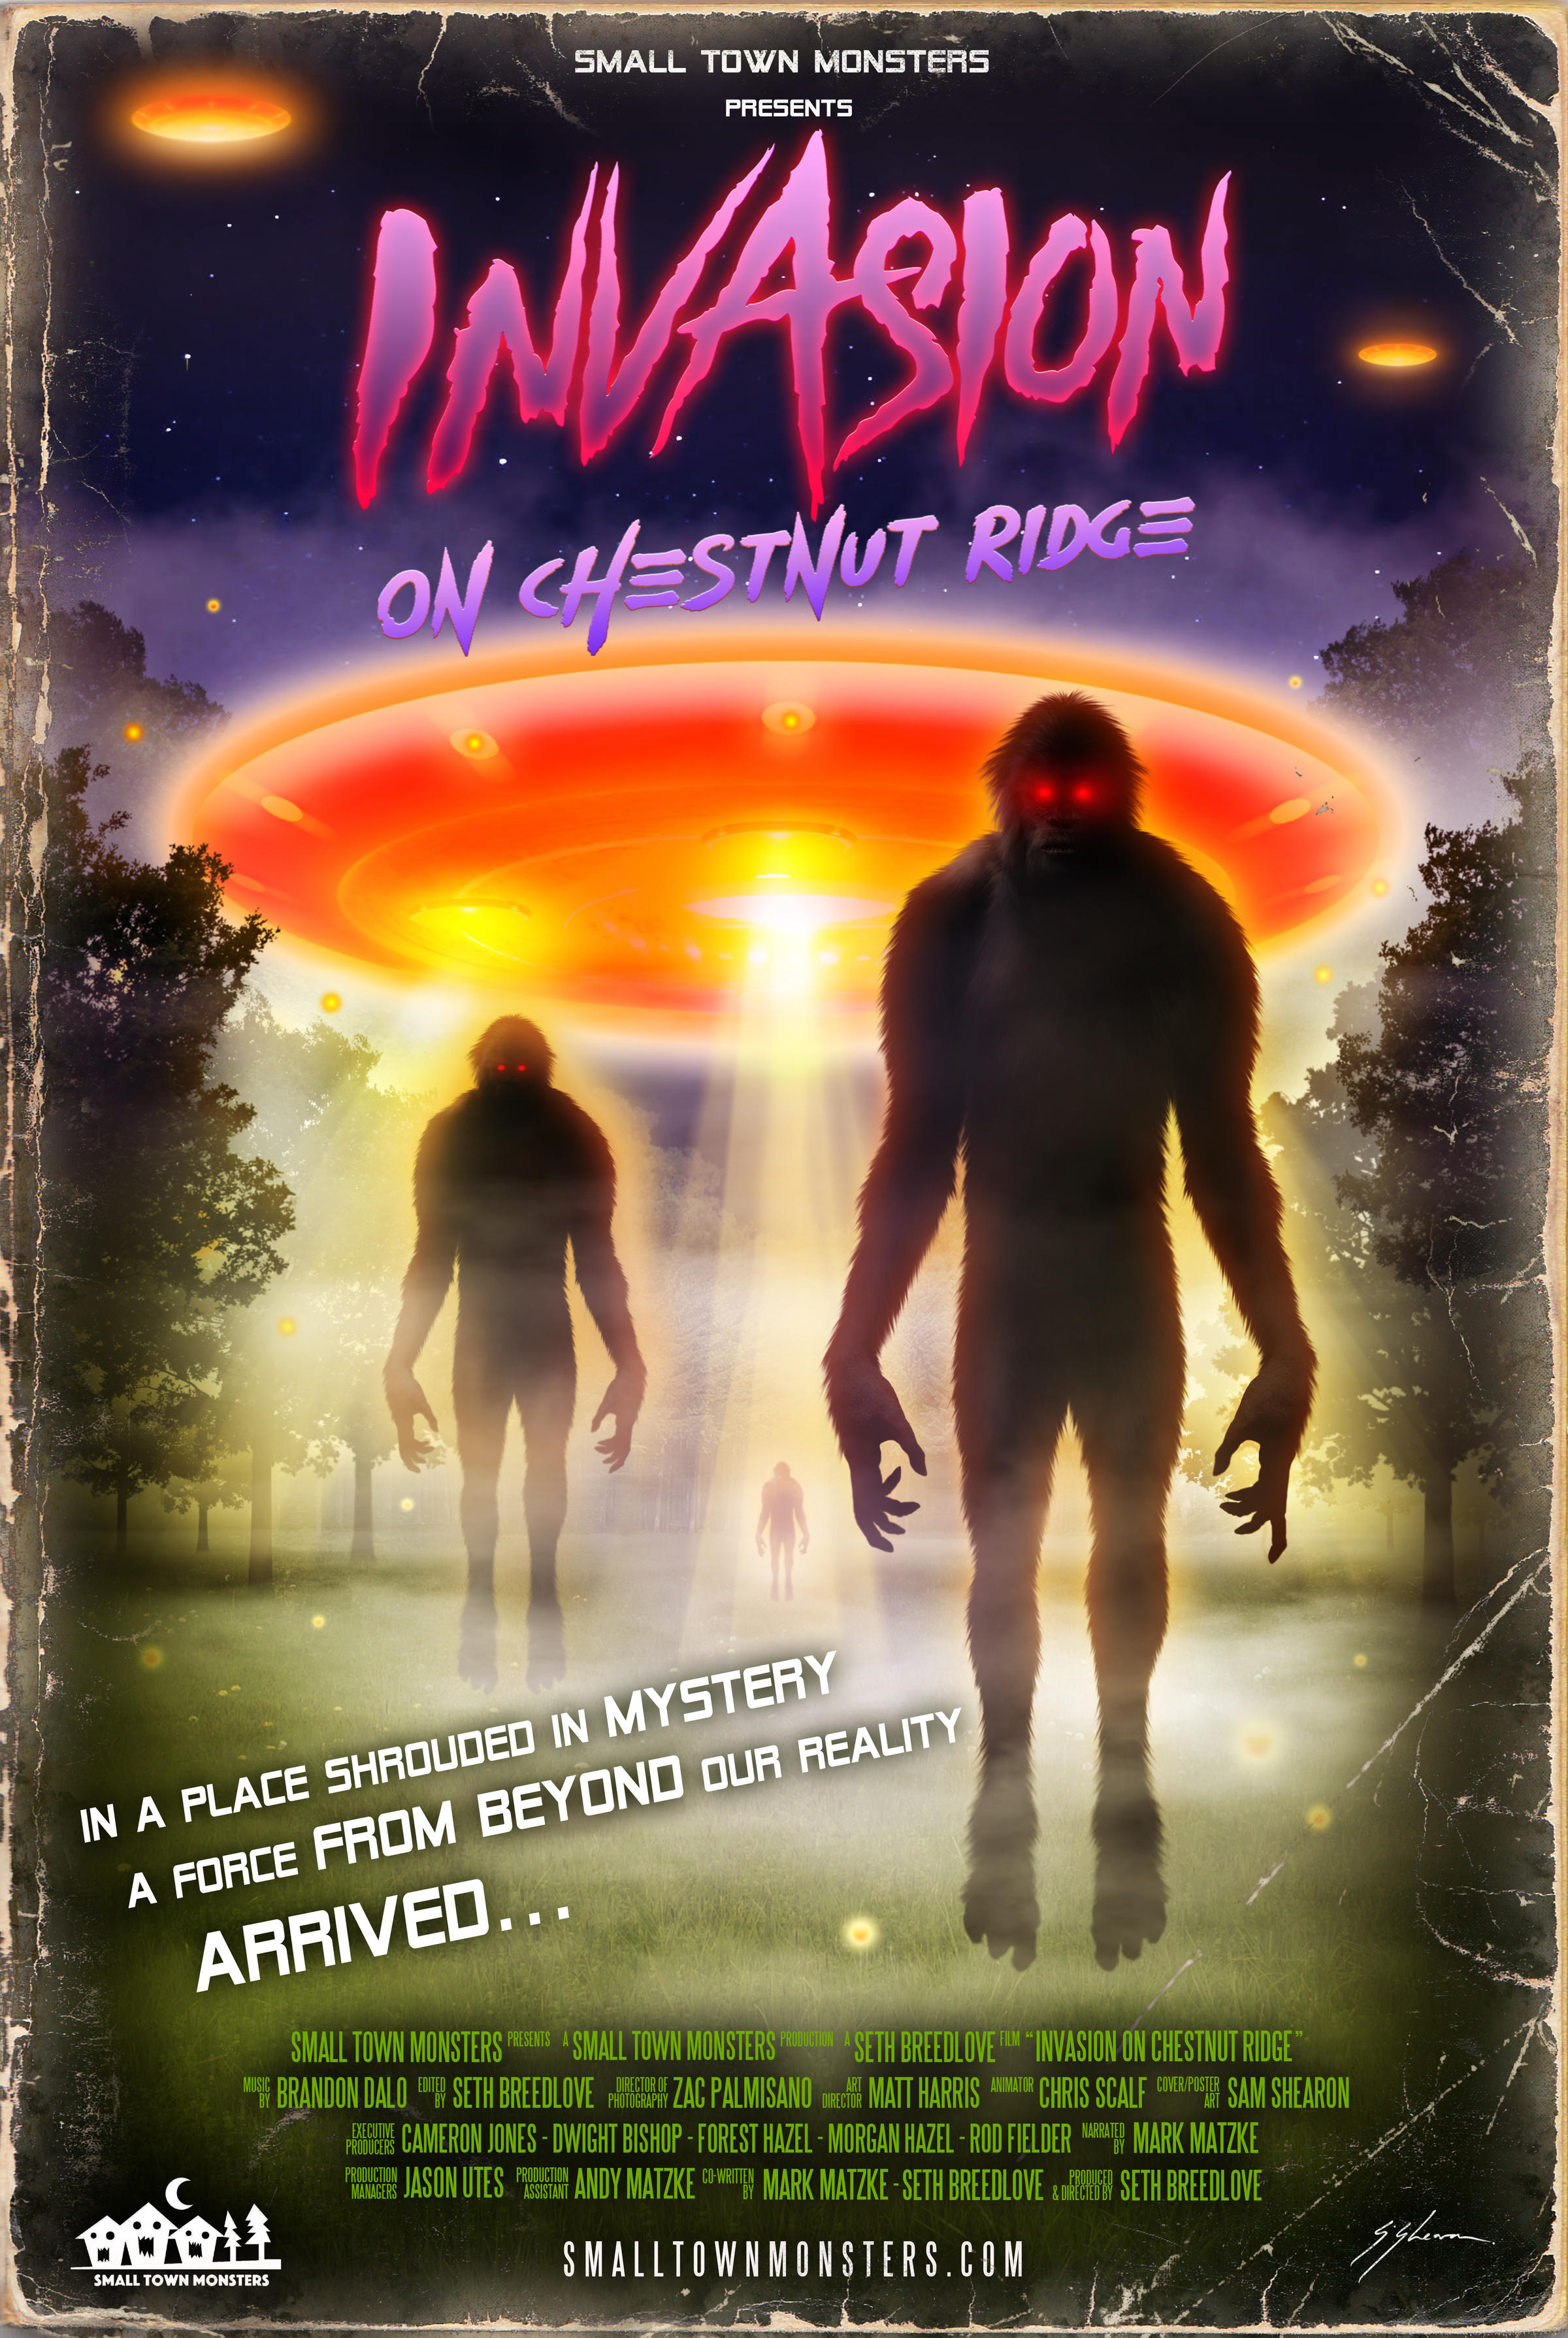 """The movie poster for """"Invasion on Chestnut Ridge"""". Credit Small Town Monsters"""